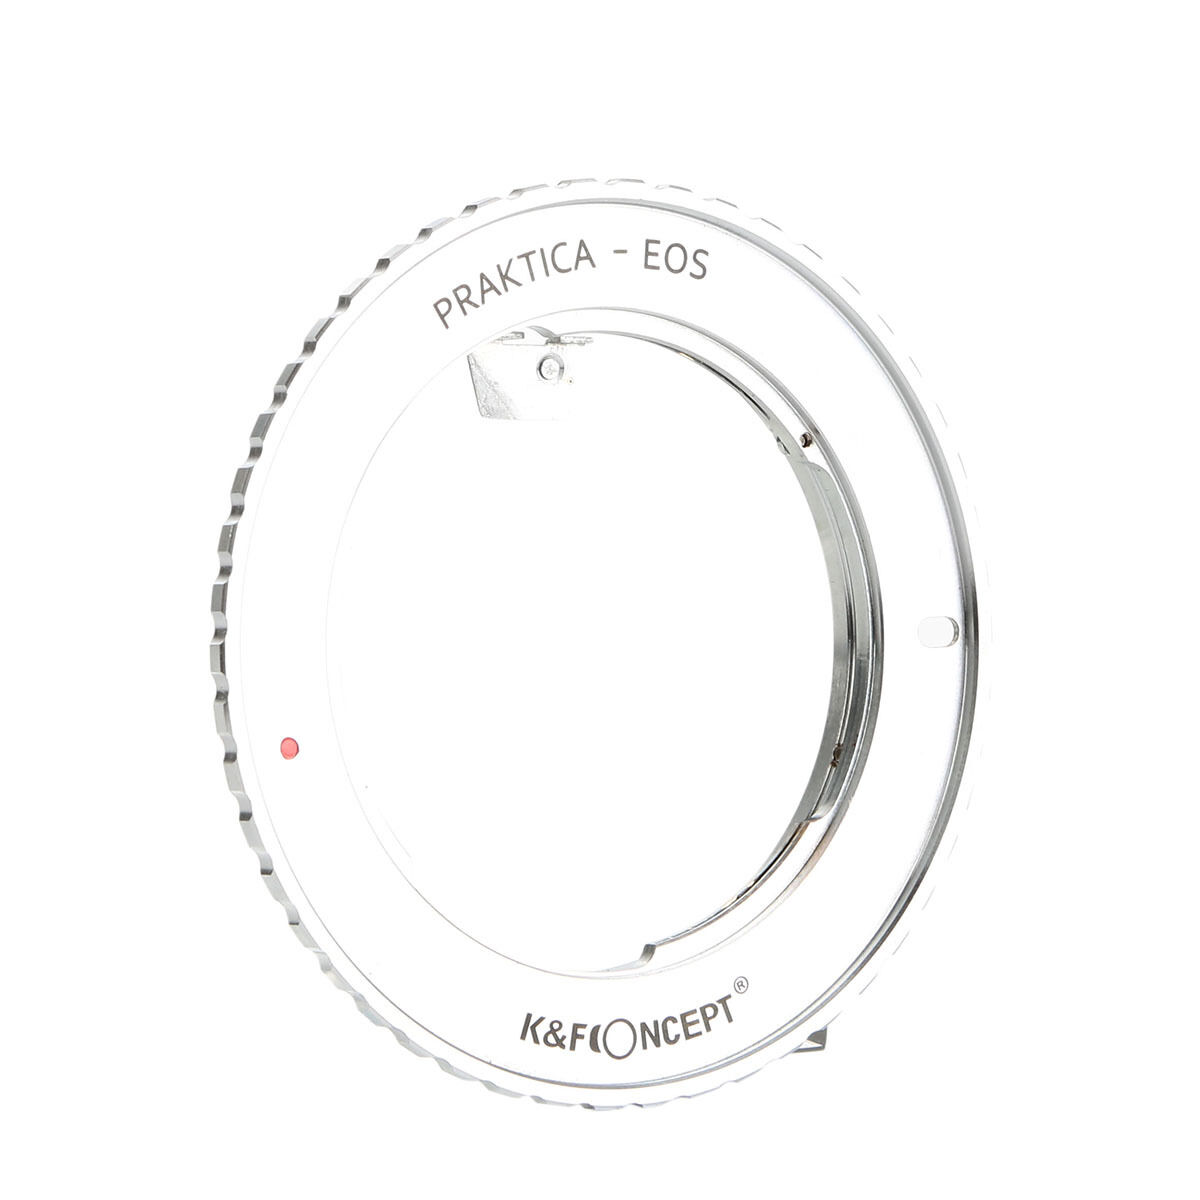 K&F Concept adapter for Praktica mount lens to Canon EOS